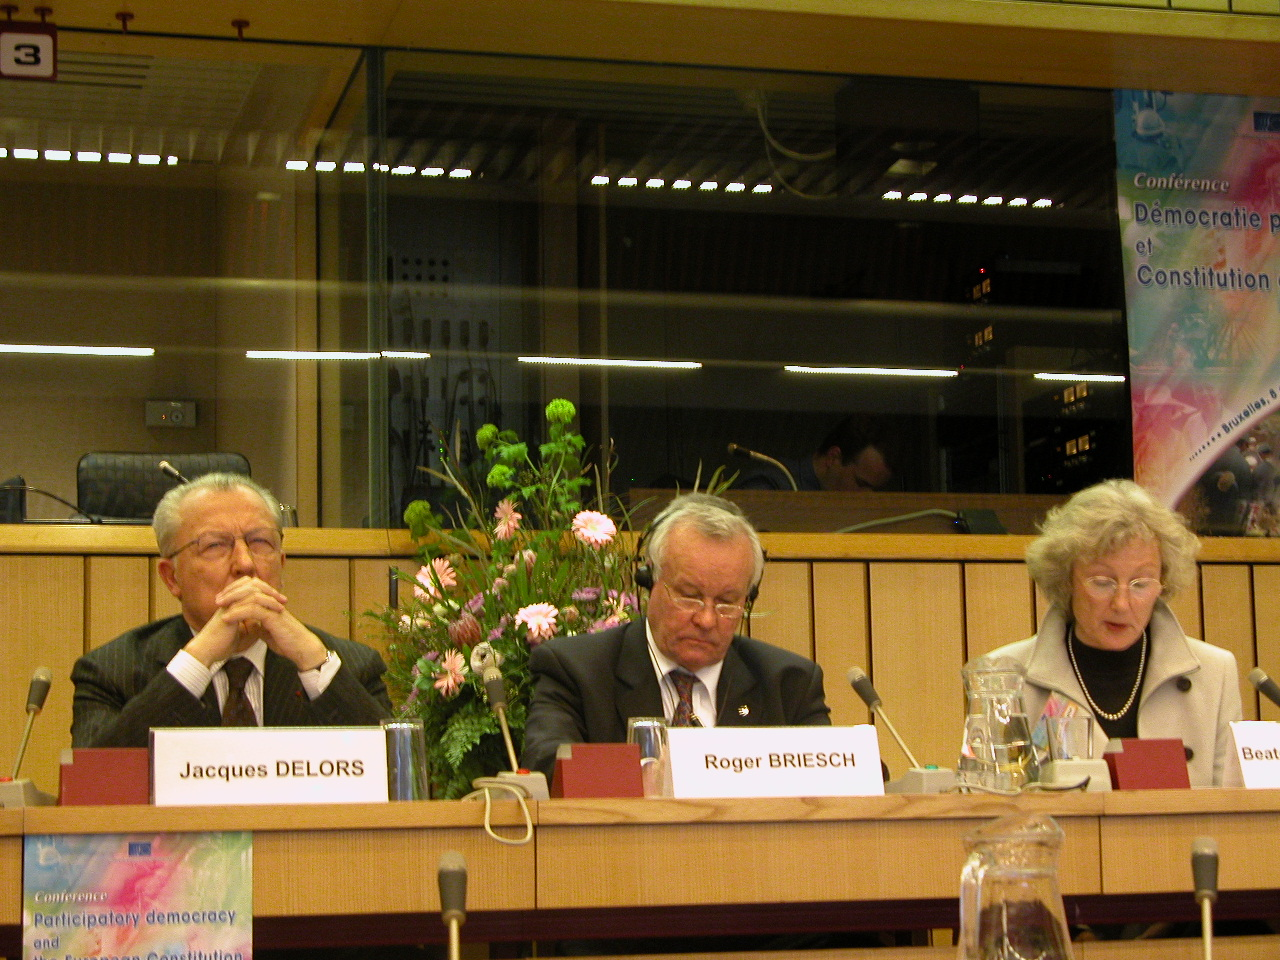 Mr Jacques DELORS, President of the Research and Policy Group Notre Europe, Mr Roger Briesch, President of the EESC, Prof. Beate KOHLER-KOCH, Social Science Faculty, University of Mannheim (Germany)